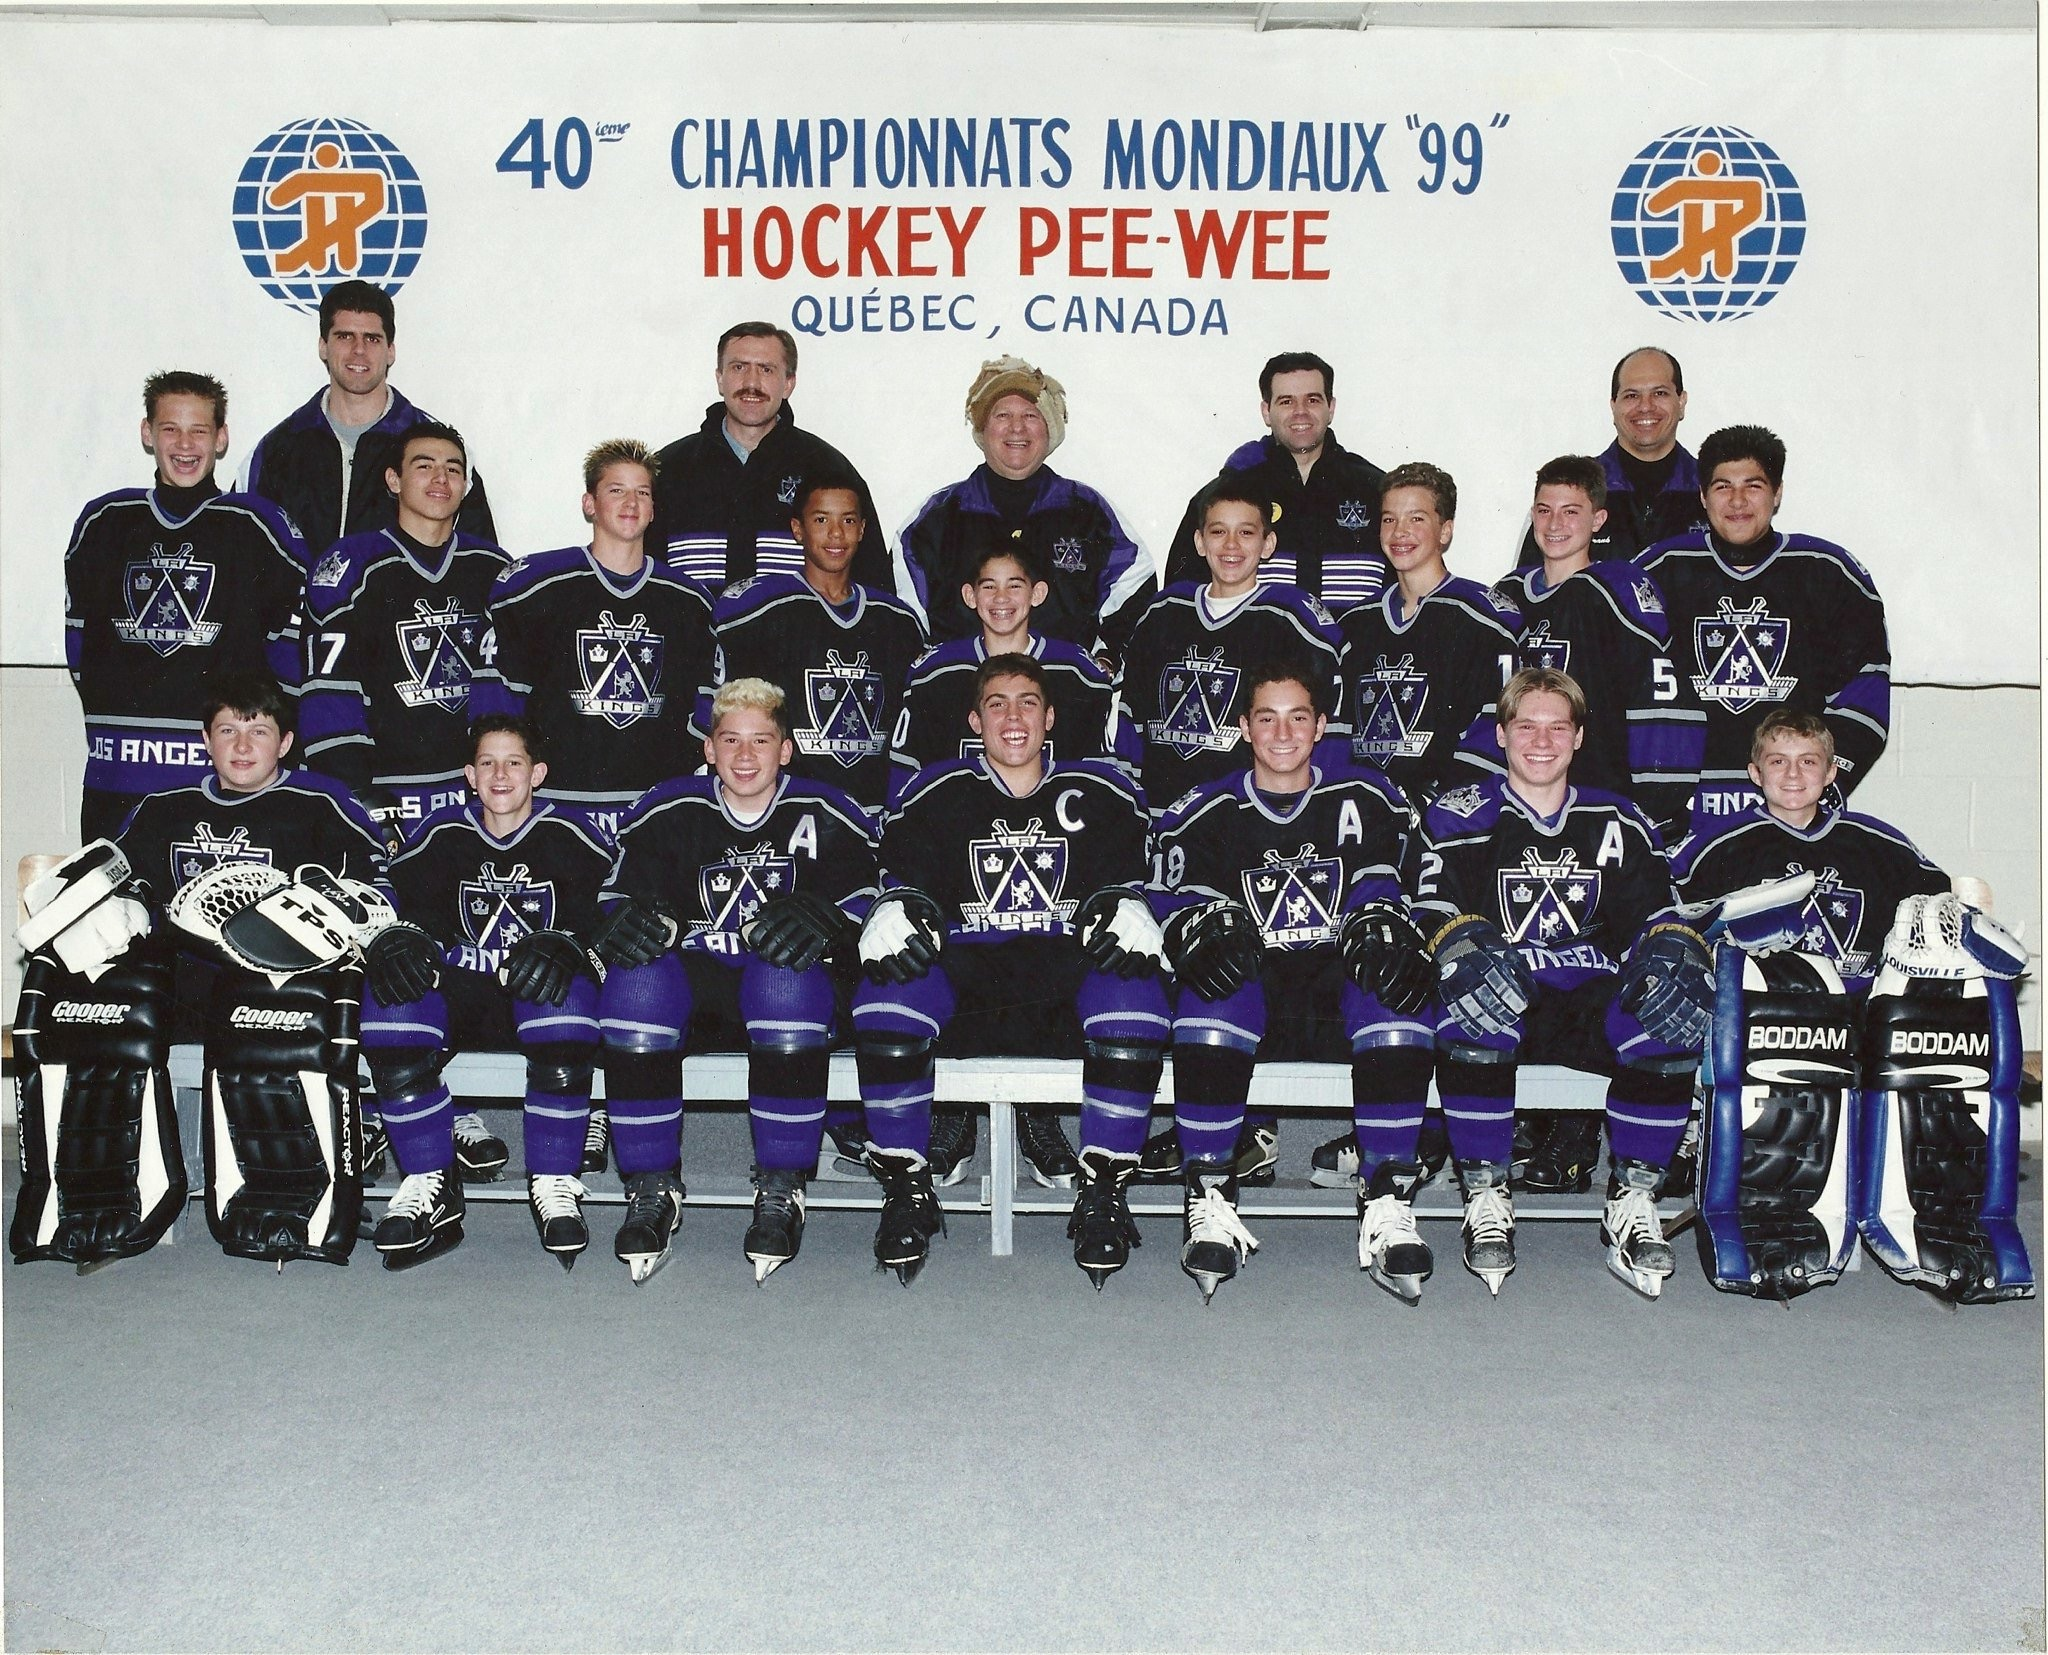 Copy of 2009 Pee Wee Quebec Tournament